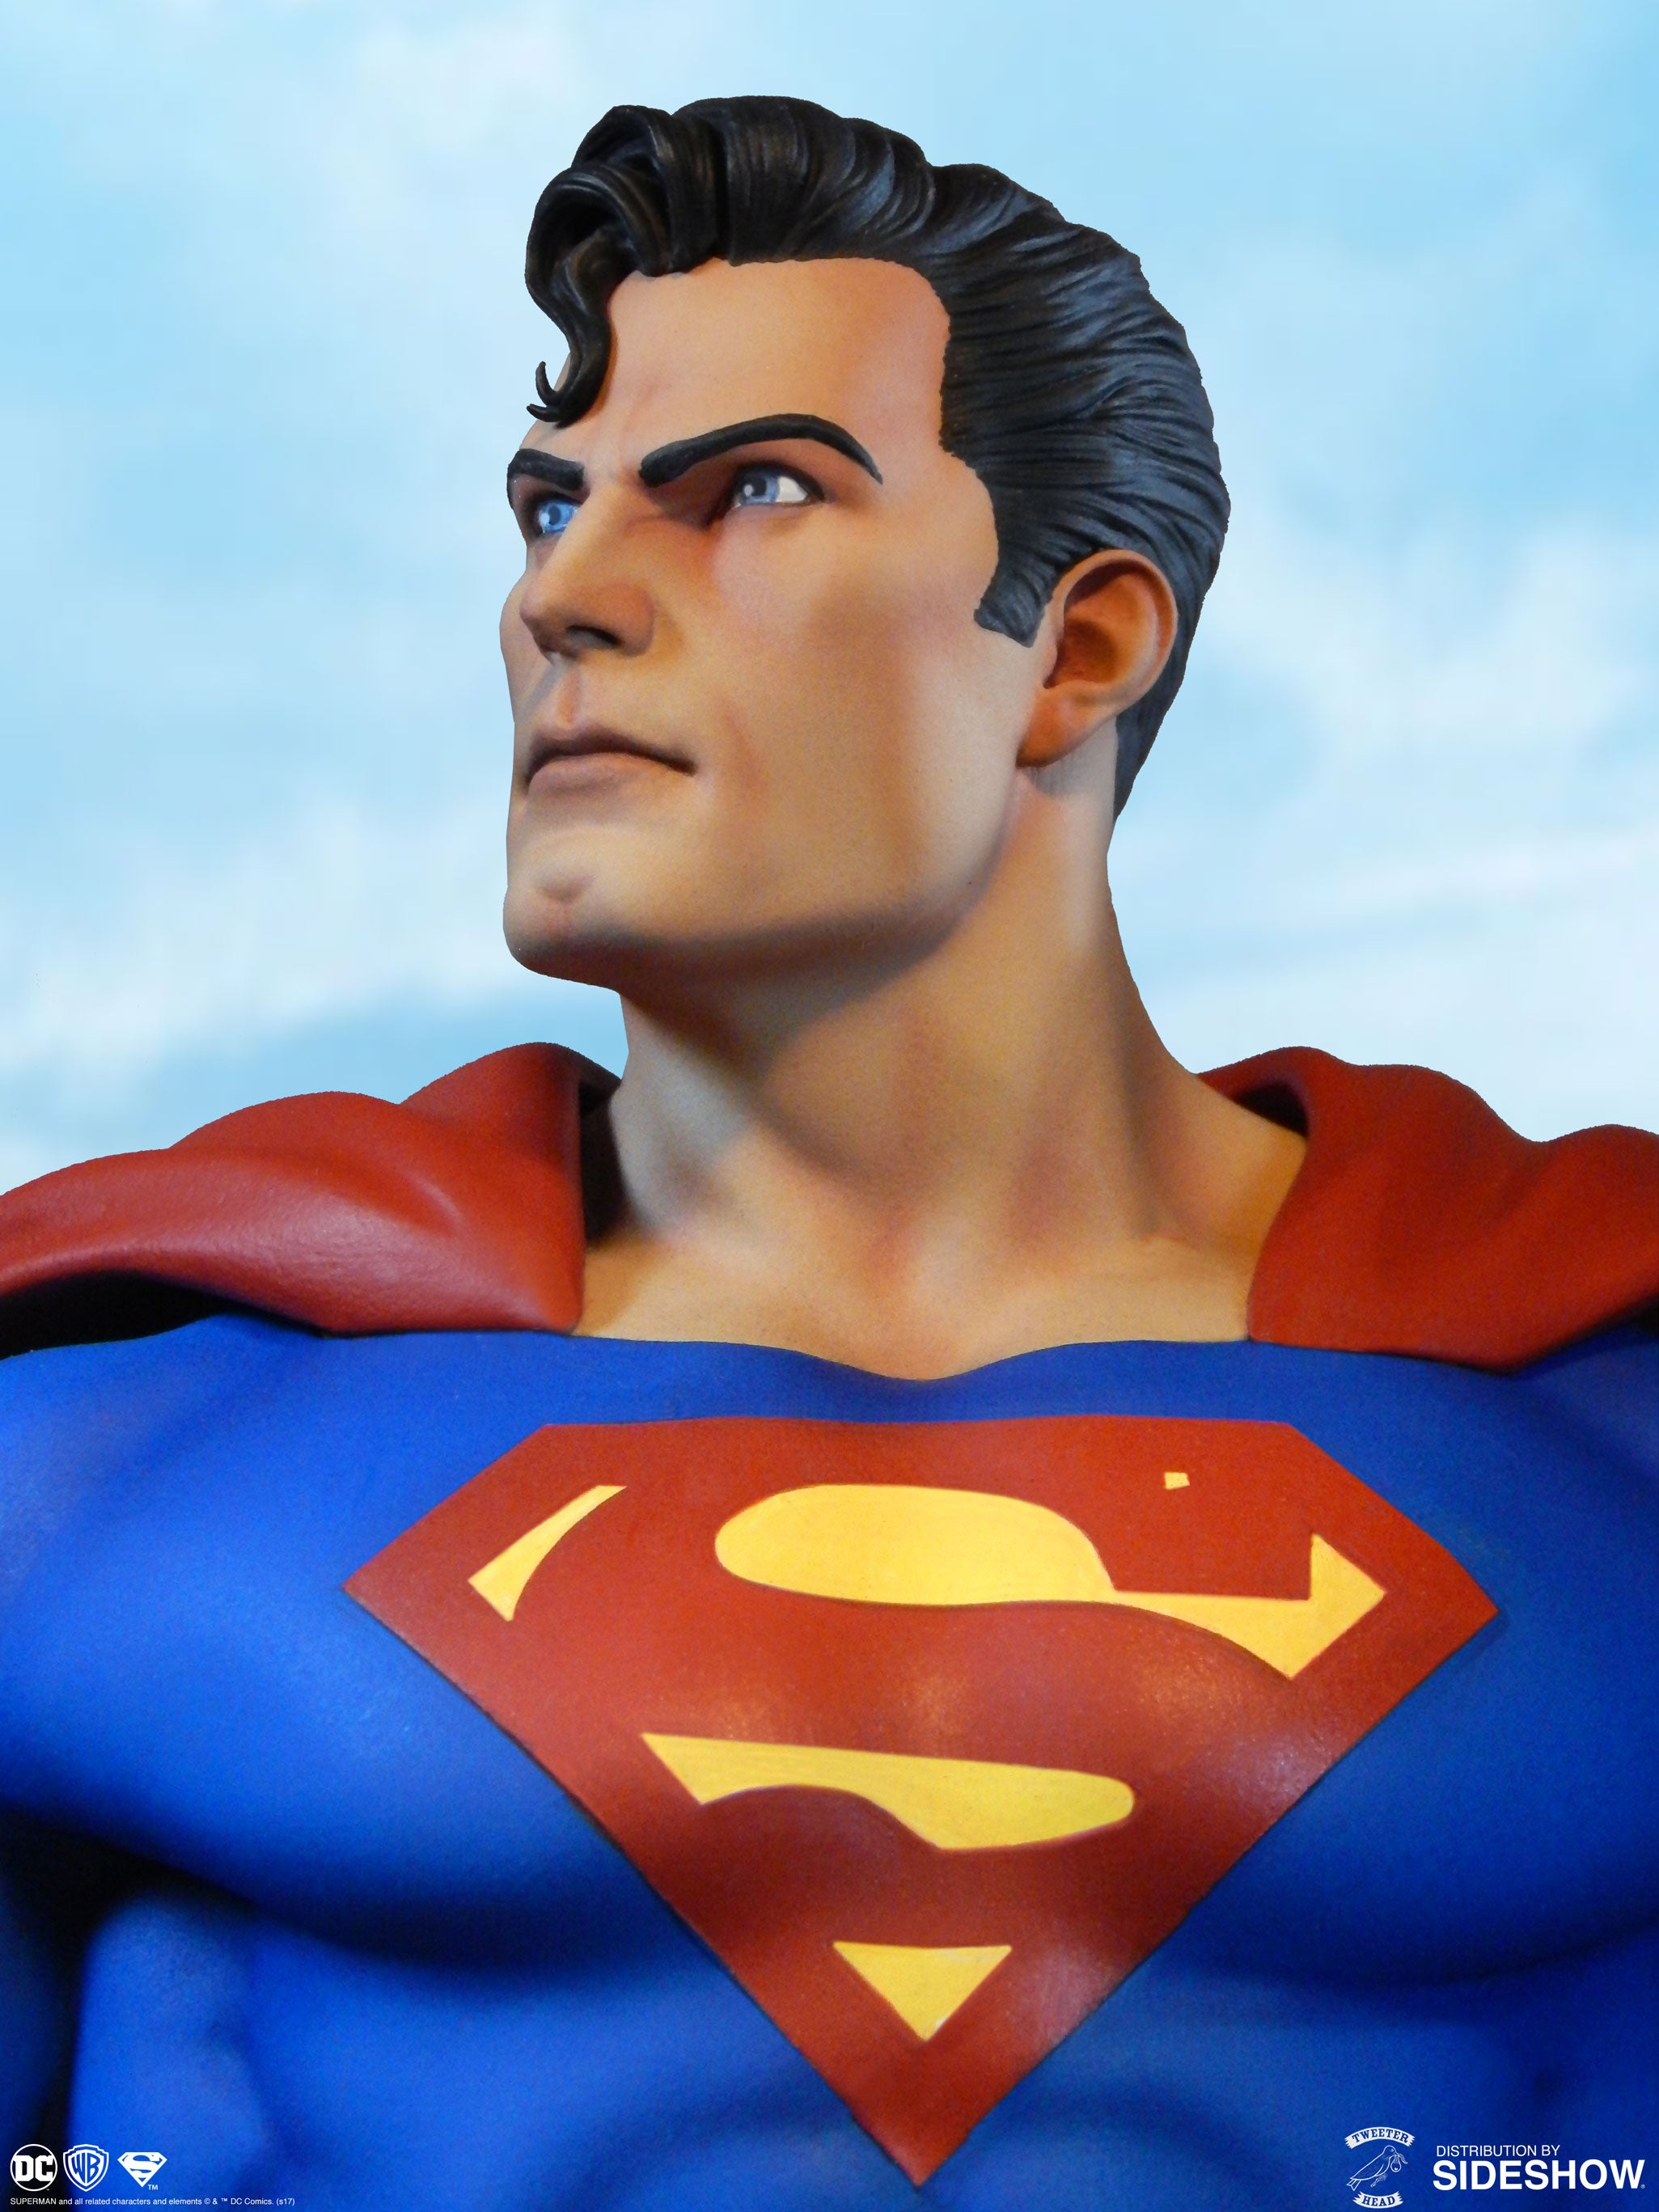 Sideshow Collectibles - DC Comics - Super Powers Superman Maquette by Tweeterhead